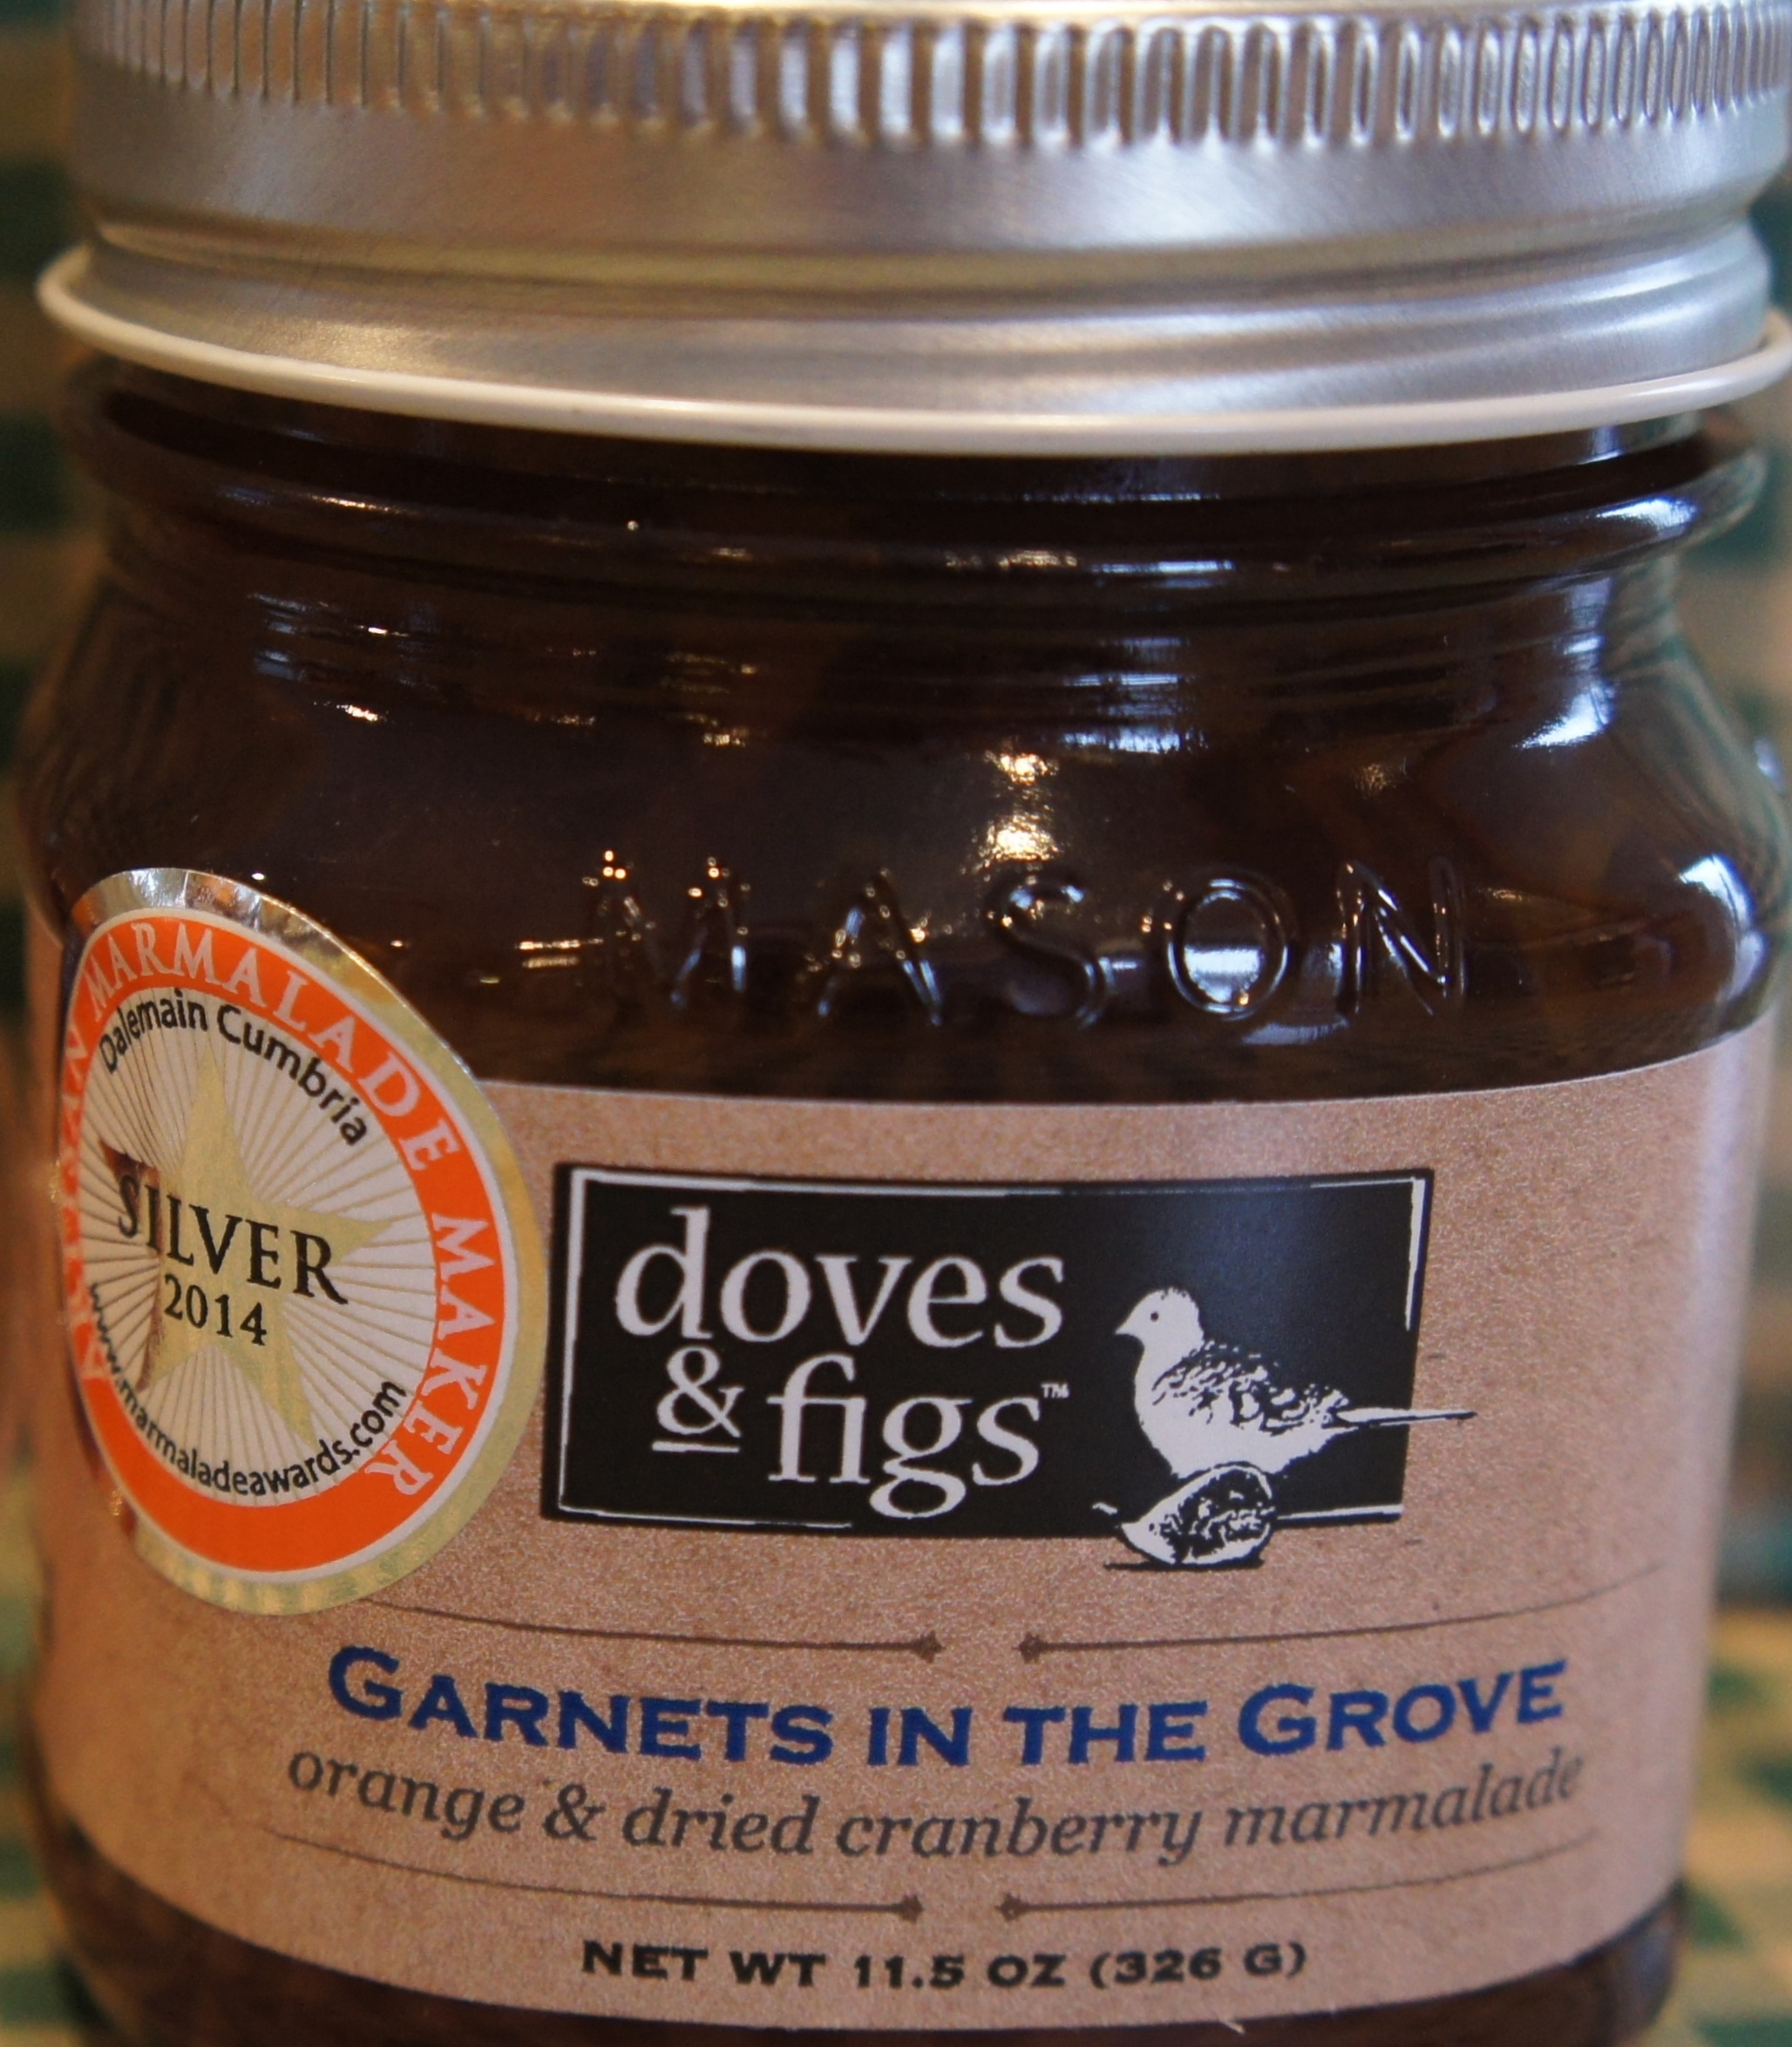 Garnets in the Grove marmalade - World Marmalade Awards 2014 medal winner